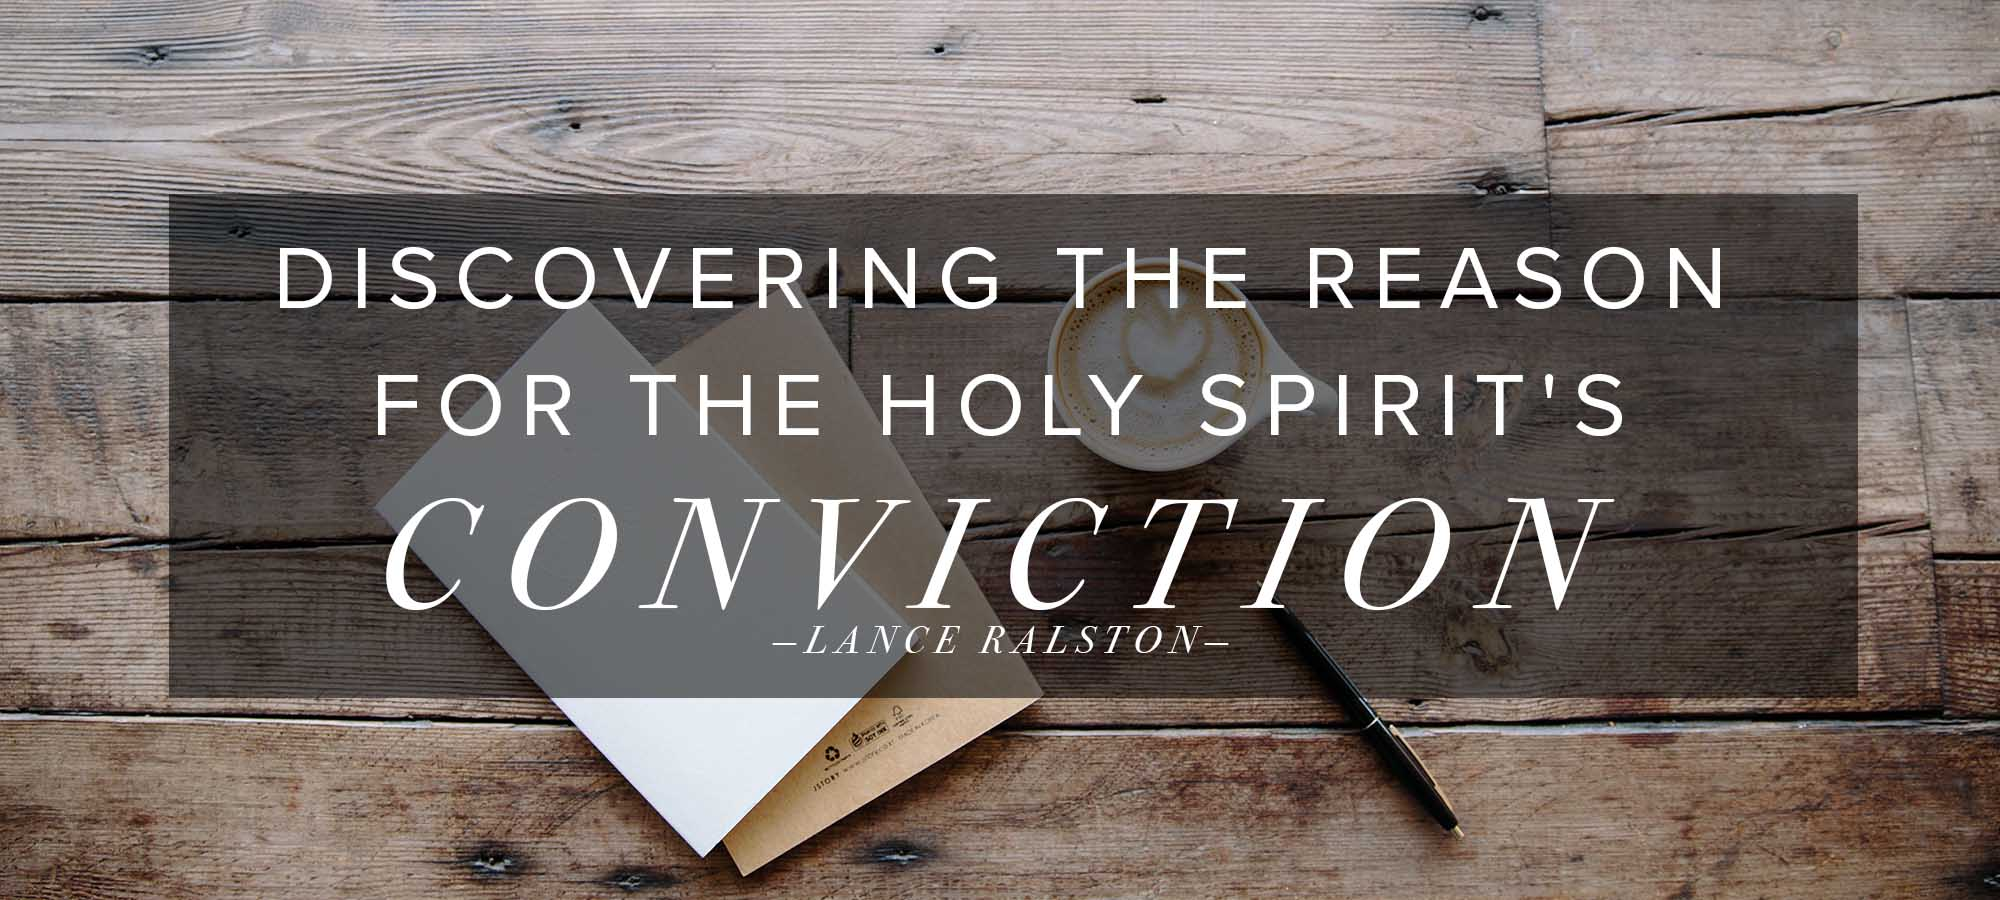 Discovering the Reason for the Holy Spirit's Conviction